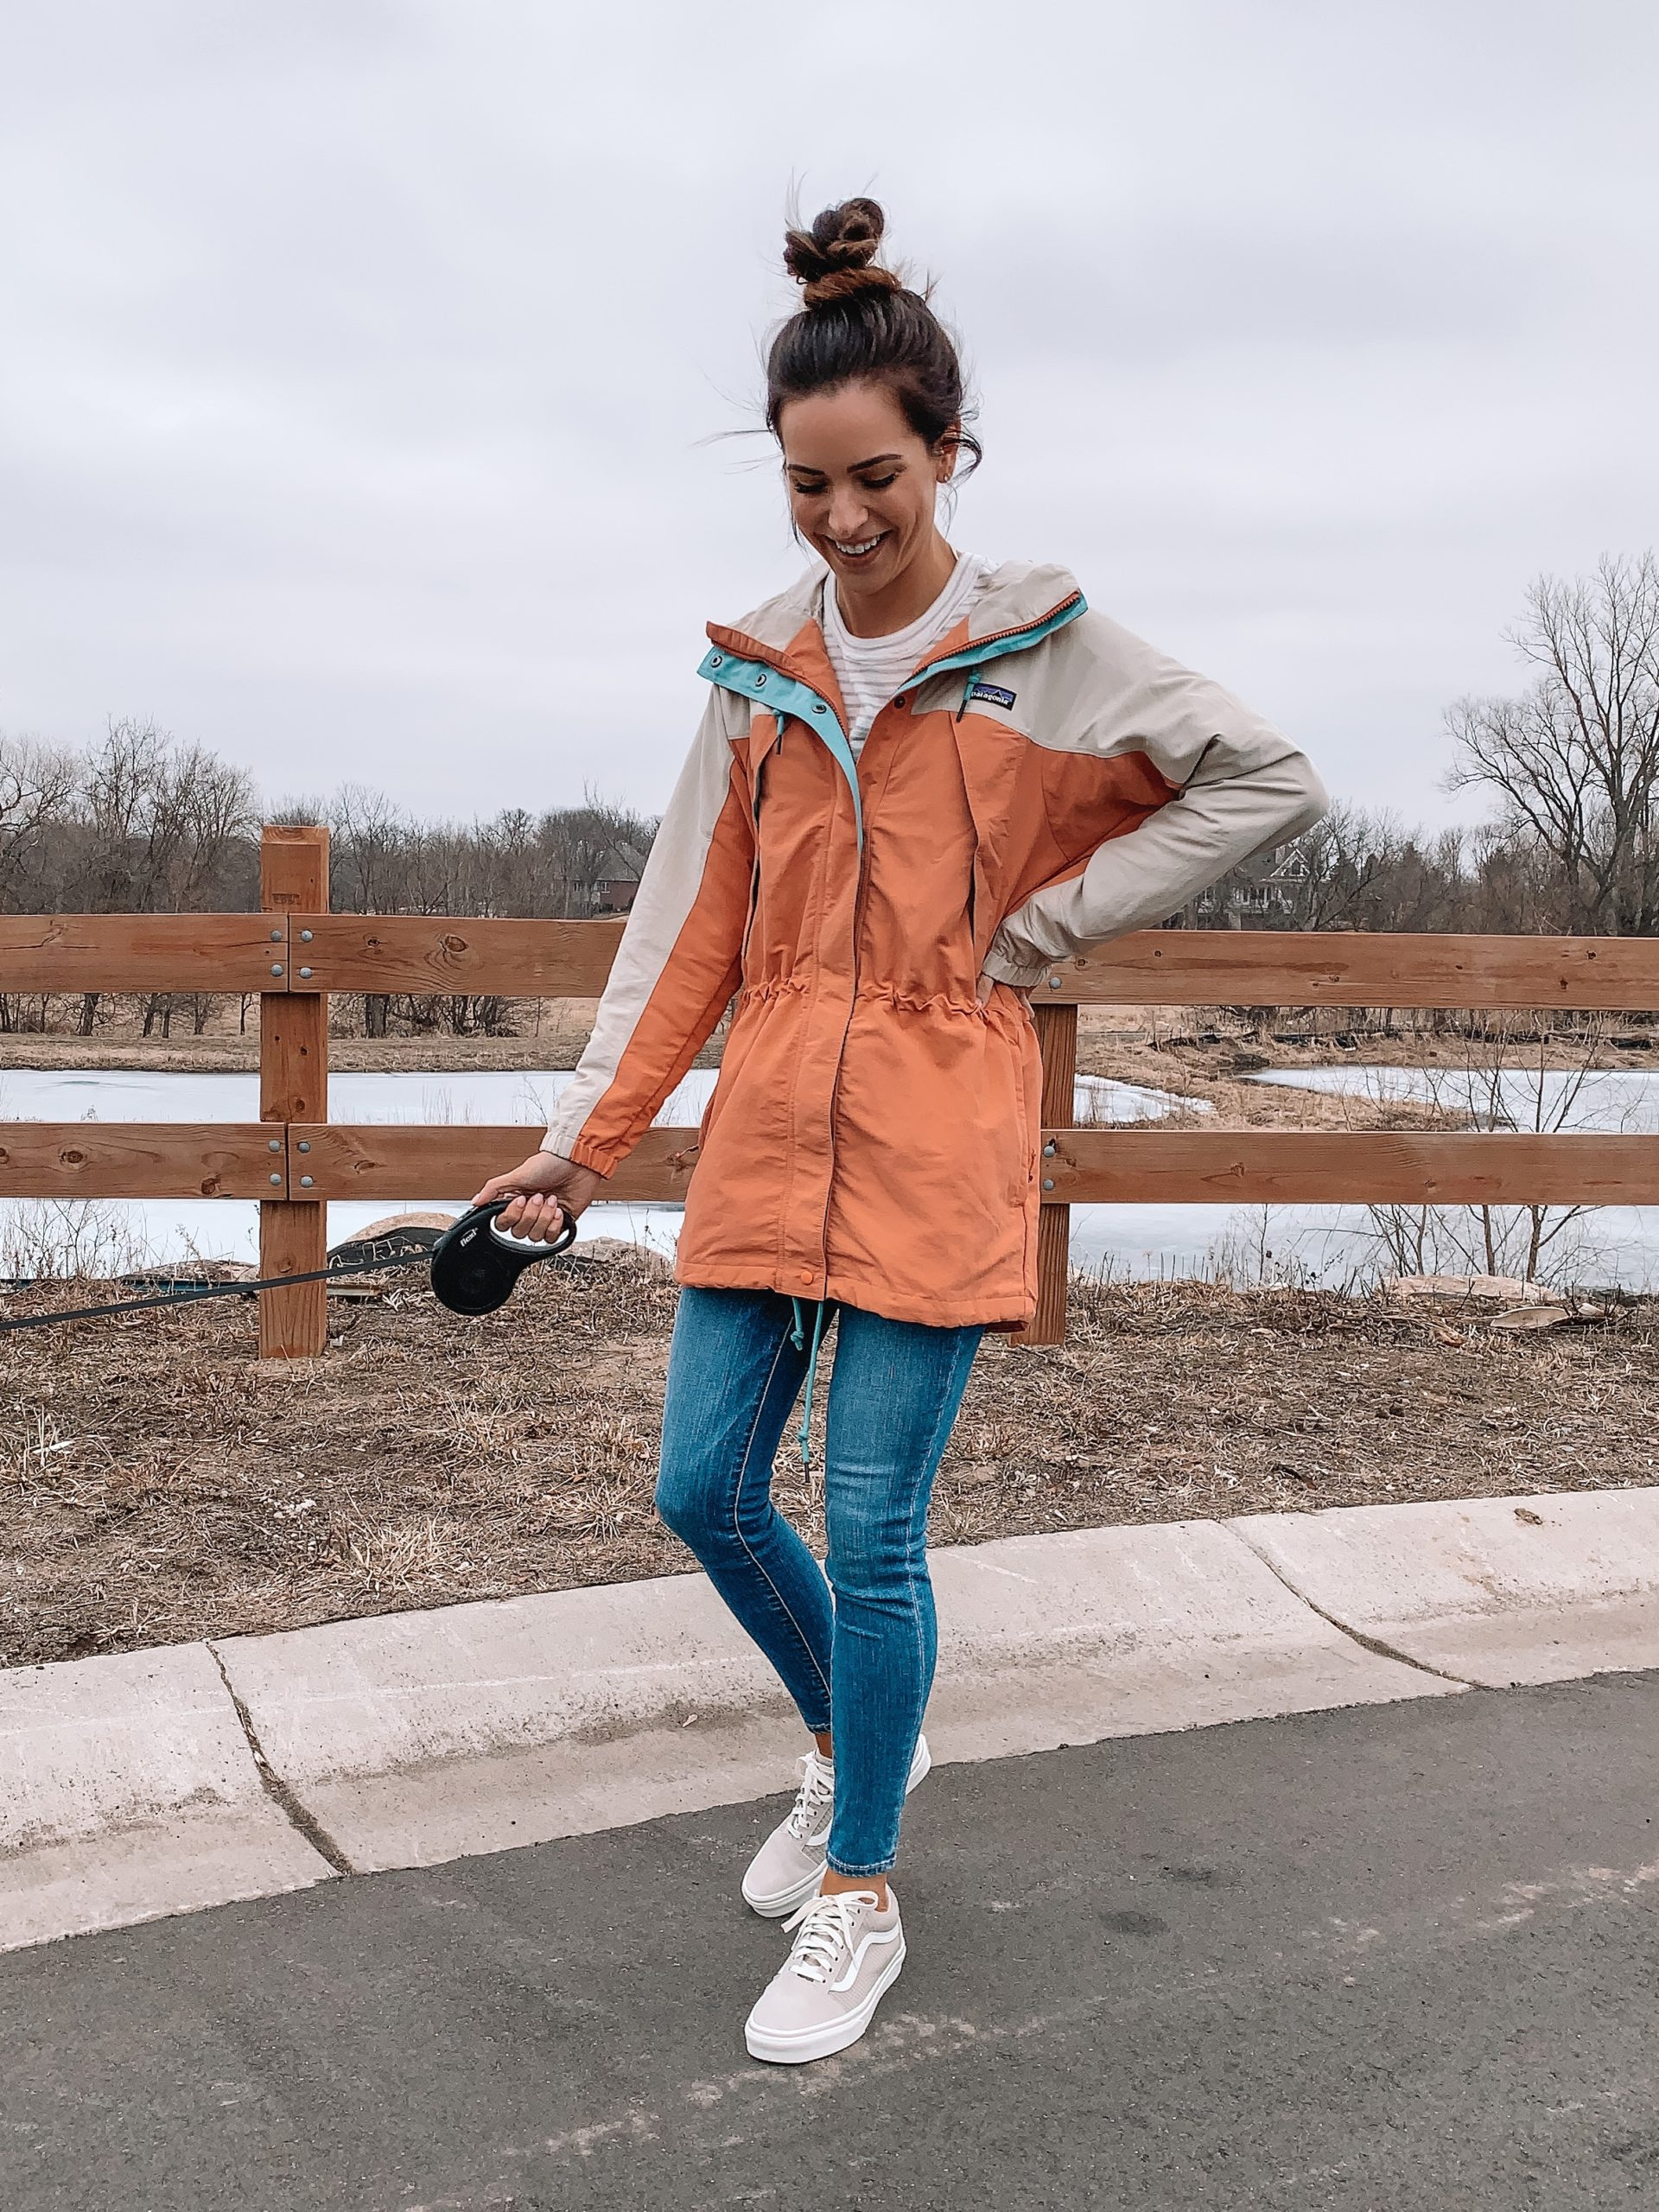 backcountry spring transitional jackets, Patagonia skyforest parka, vans old skool shoes womens, rain jacket, Minneapolis blogger, mn blogger